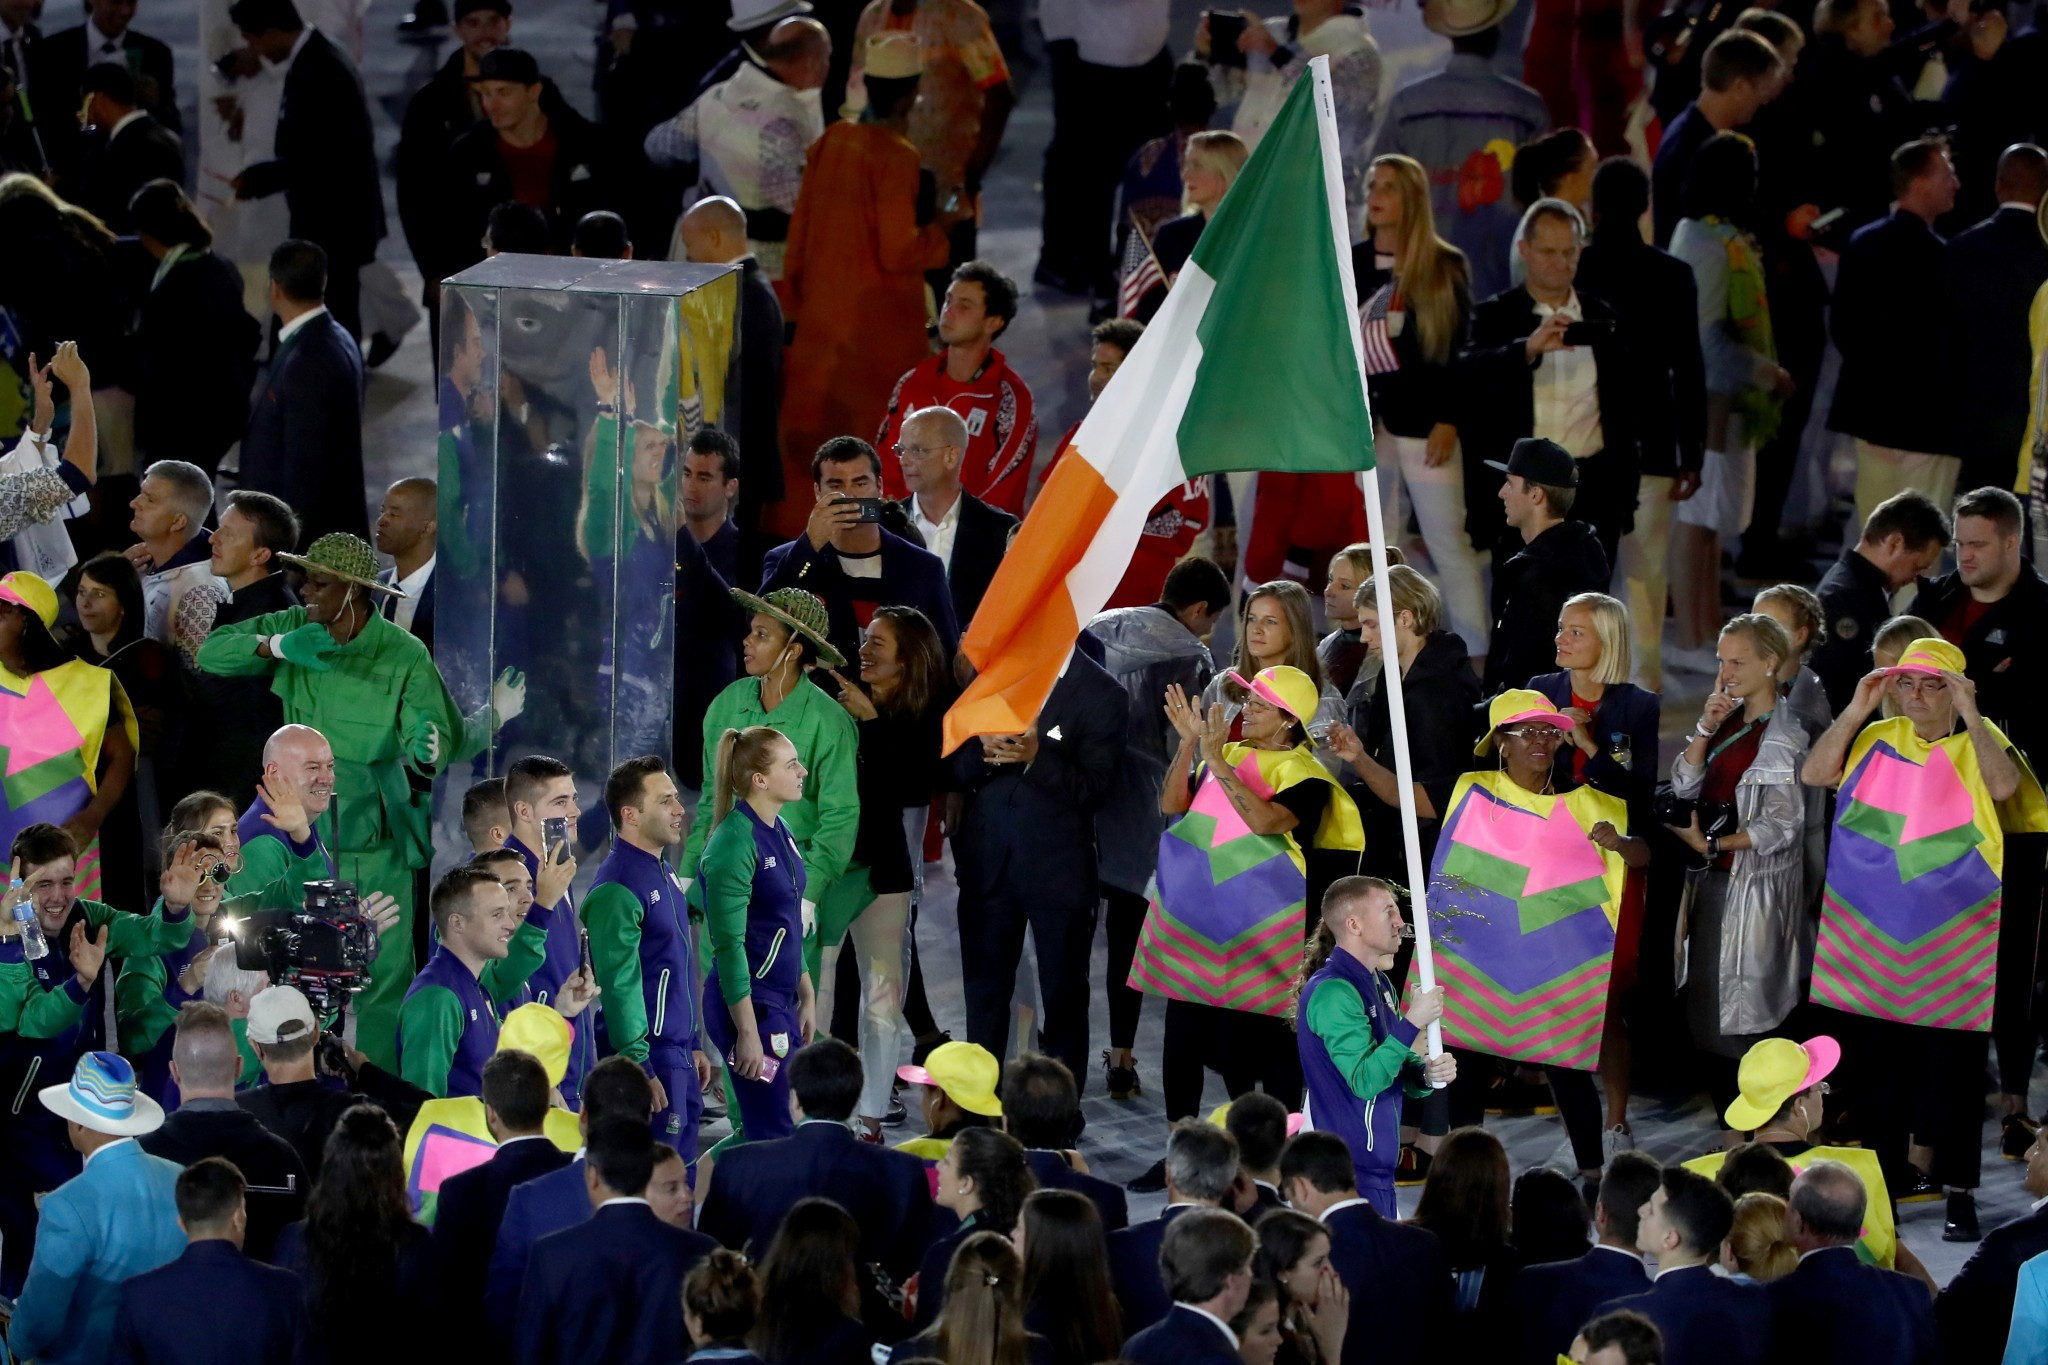 Irish Ministers criticise IOC and Rio 2016 for not cooperating with Moran Report